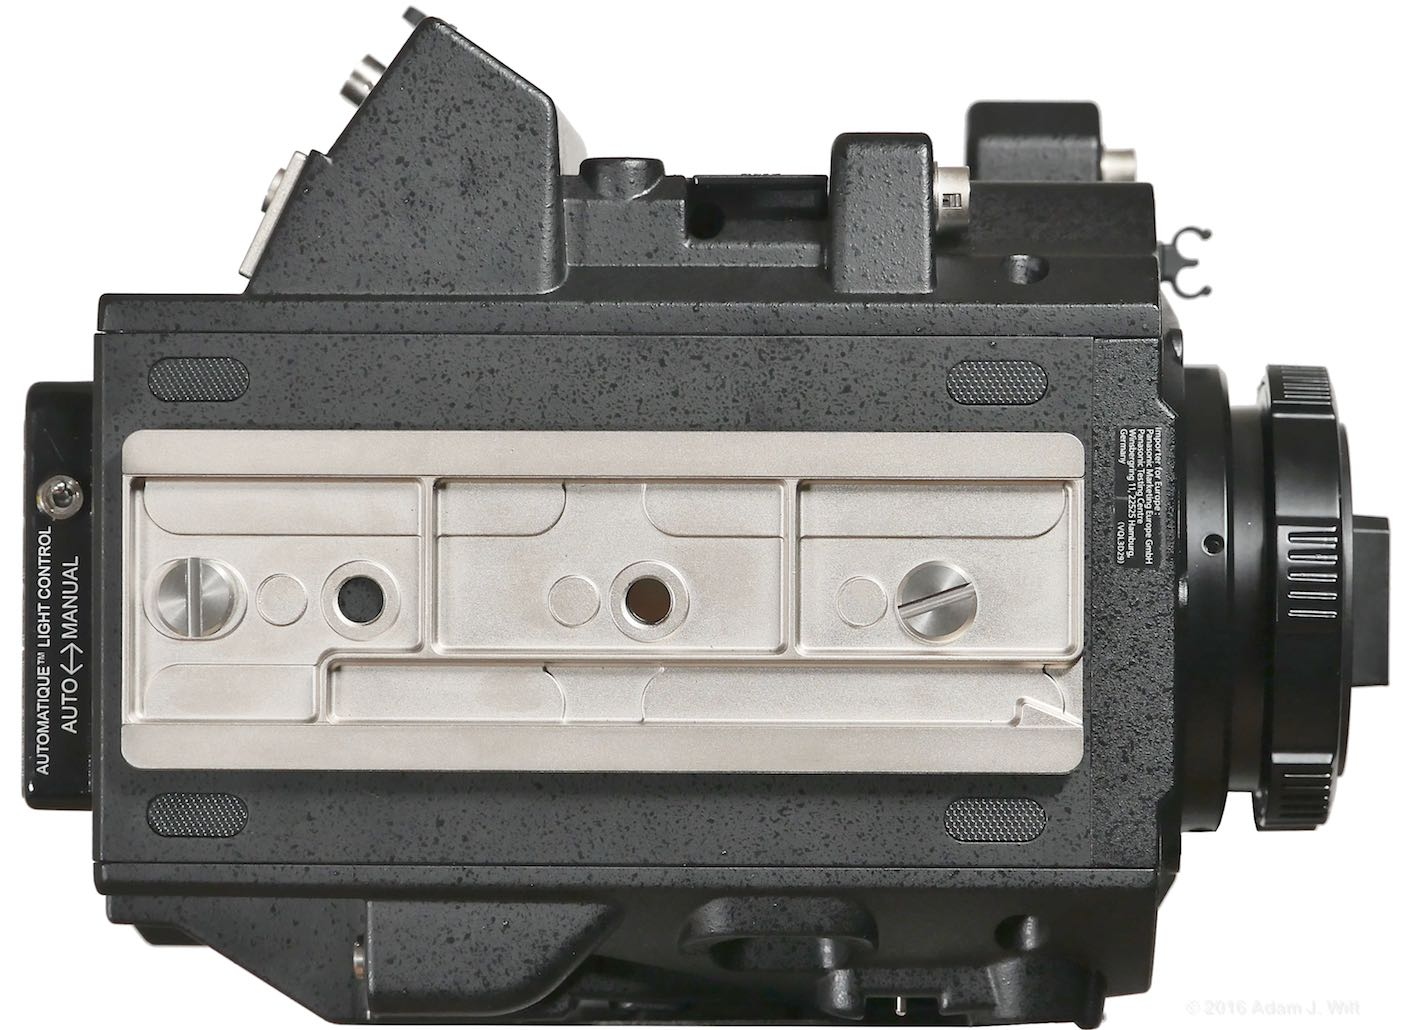 VariCam LT with dovetail plate